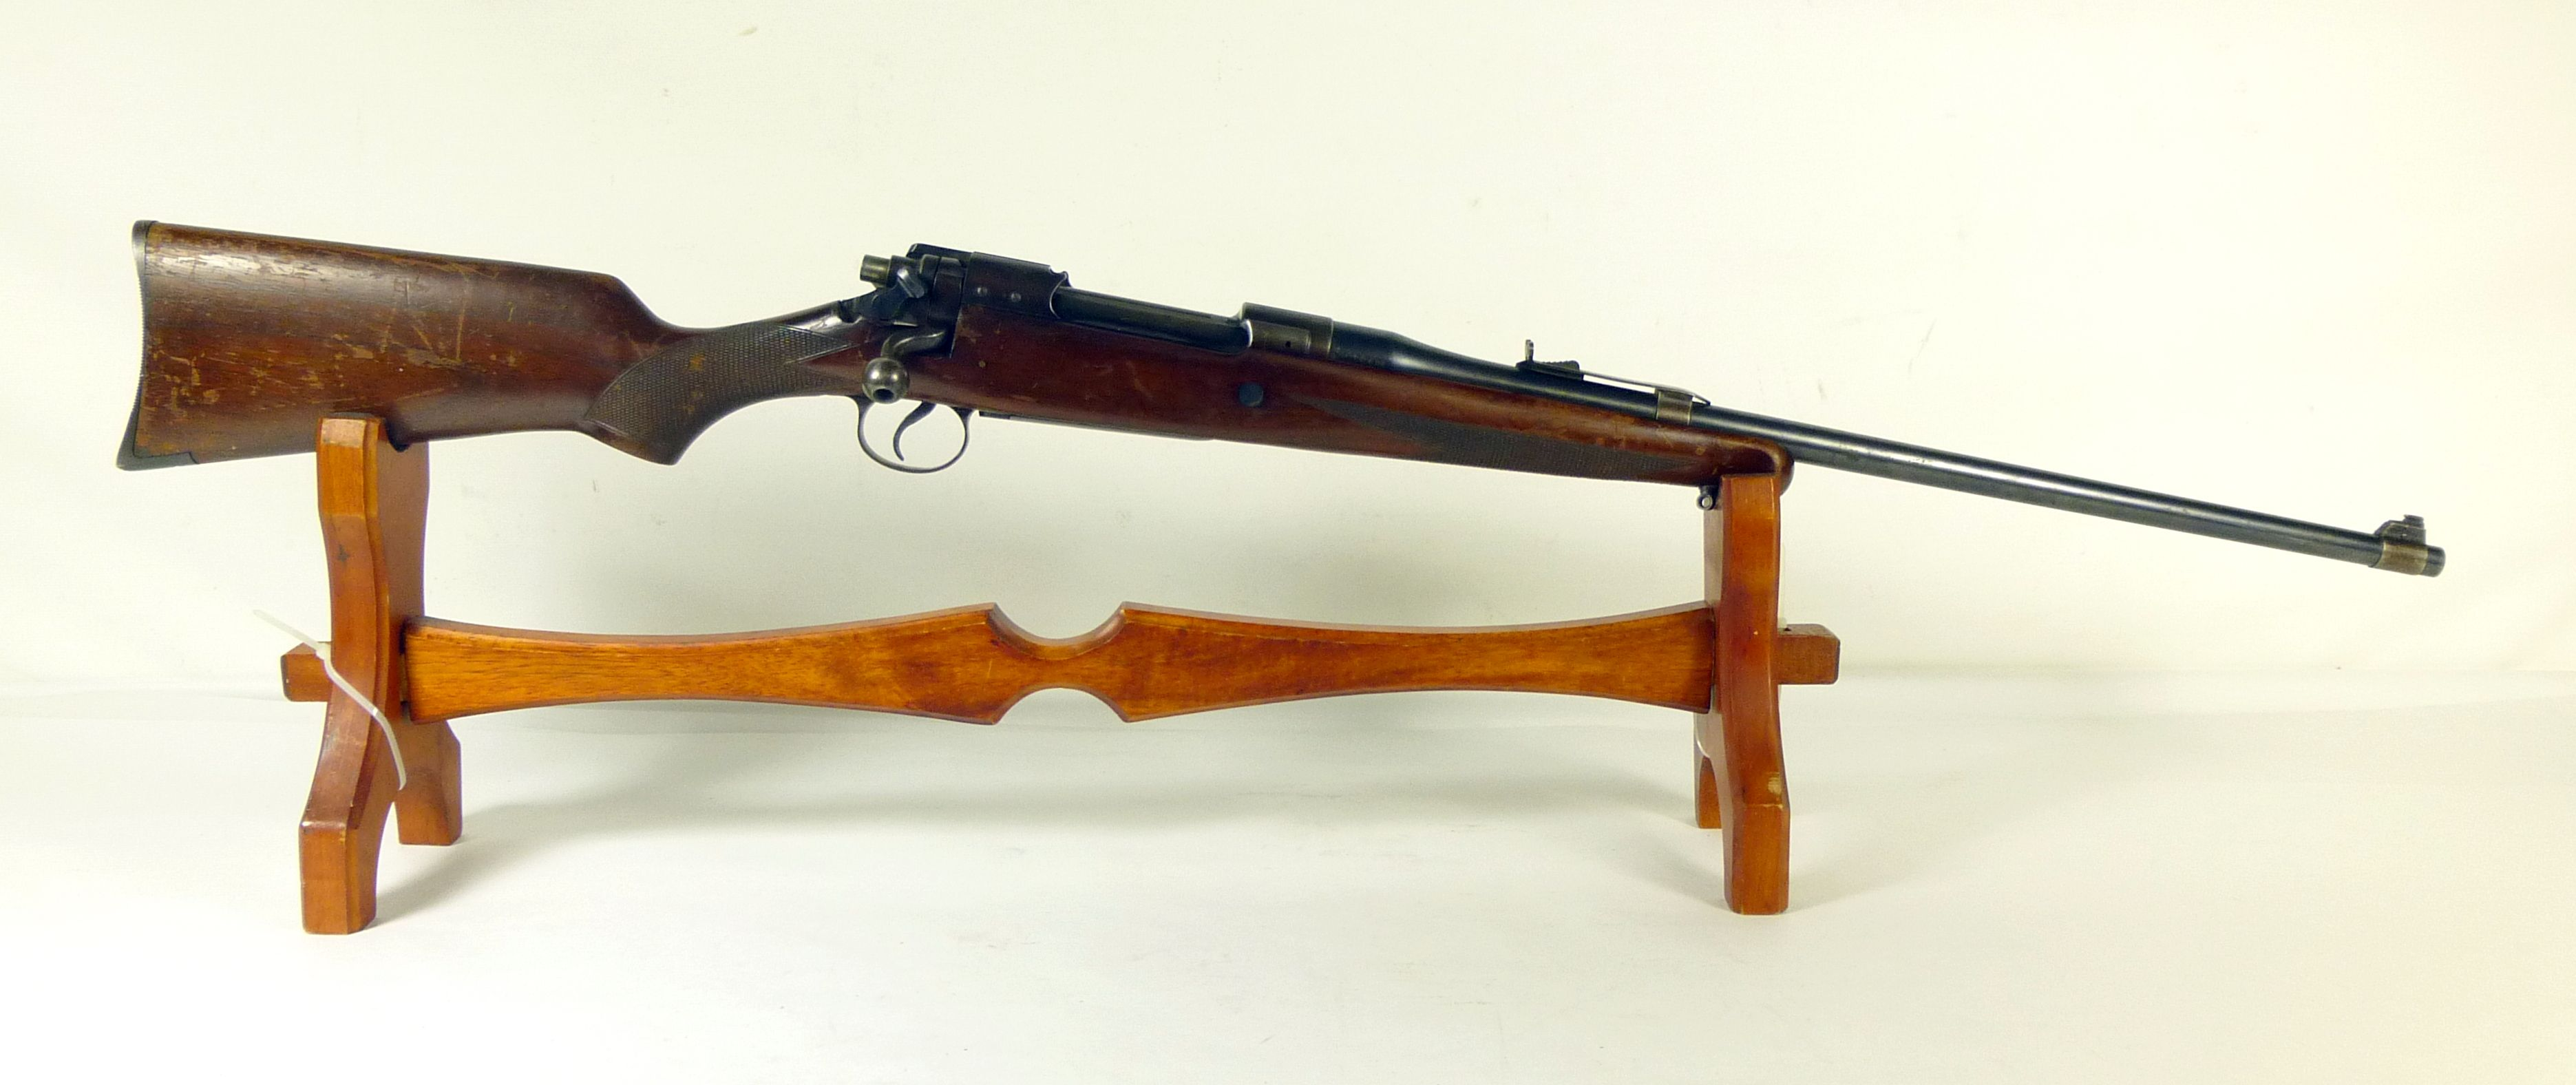 """***Remington Mod 30 Express .30-06 22"""" (30A)*** The Remington Model 30 is a US sporting rifle of the inter-war period based on the military M1917 Enfield rifle action. With a 22"""" barrel, and barrel-mouned sight, this rifle appears to be a standard Model 30A ... $975.00"""